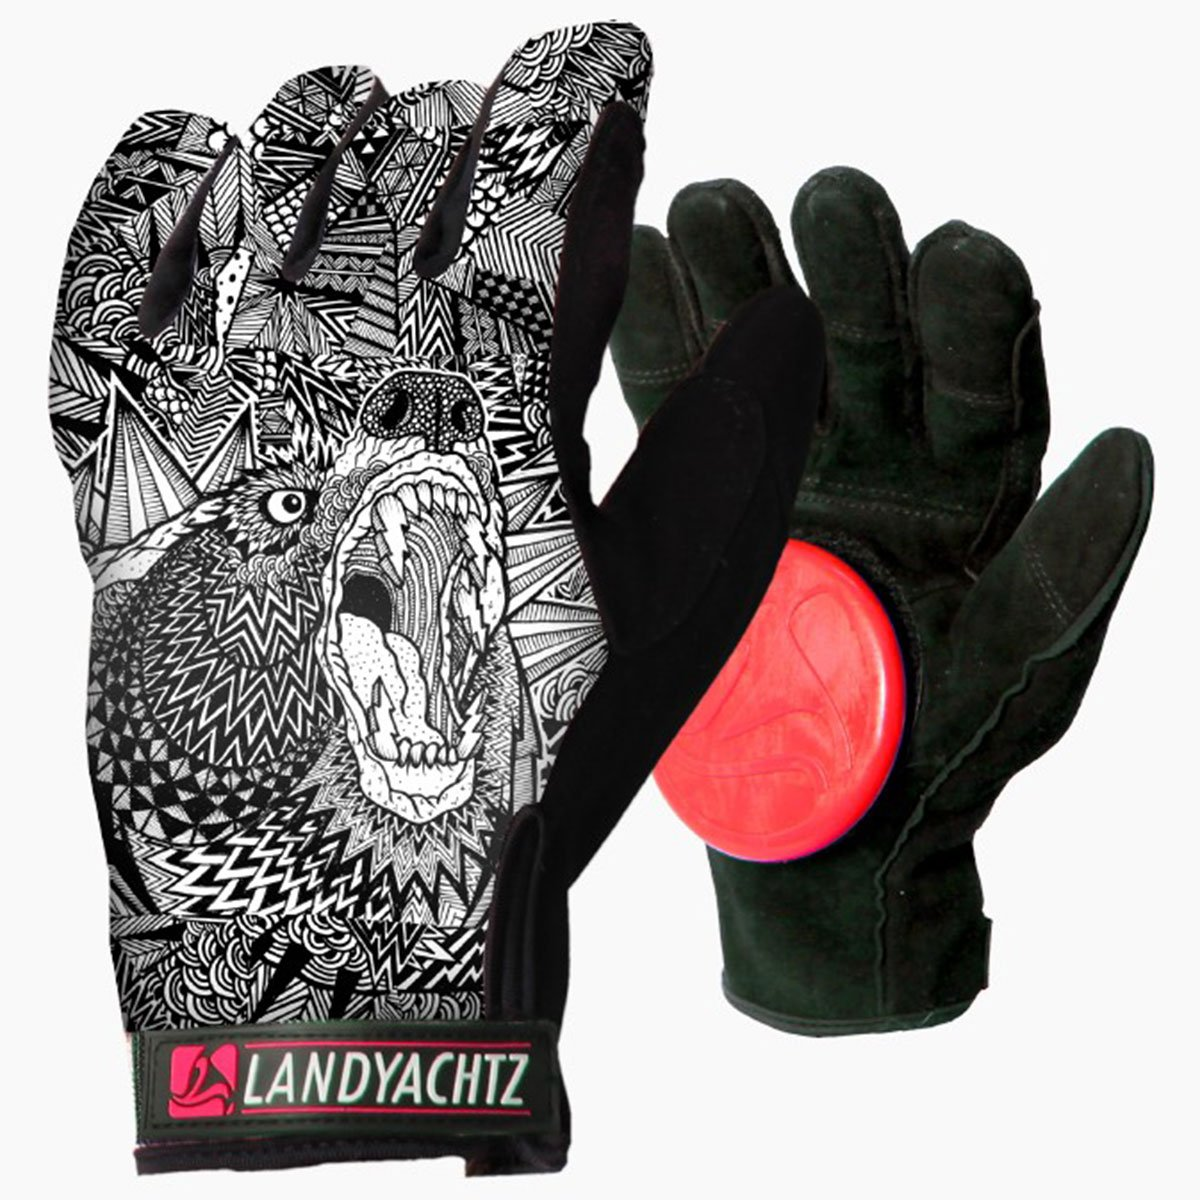 Landyachtz Spirit Slide Gloves - SM